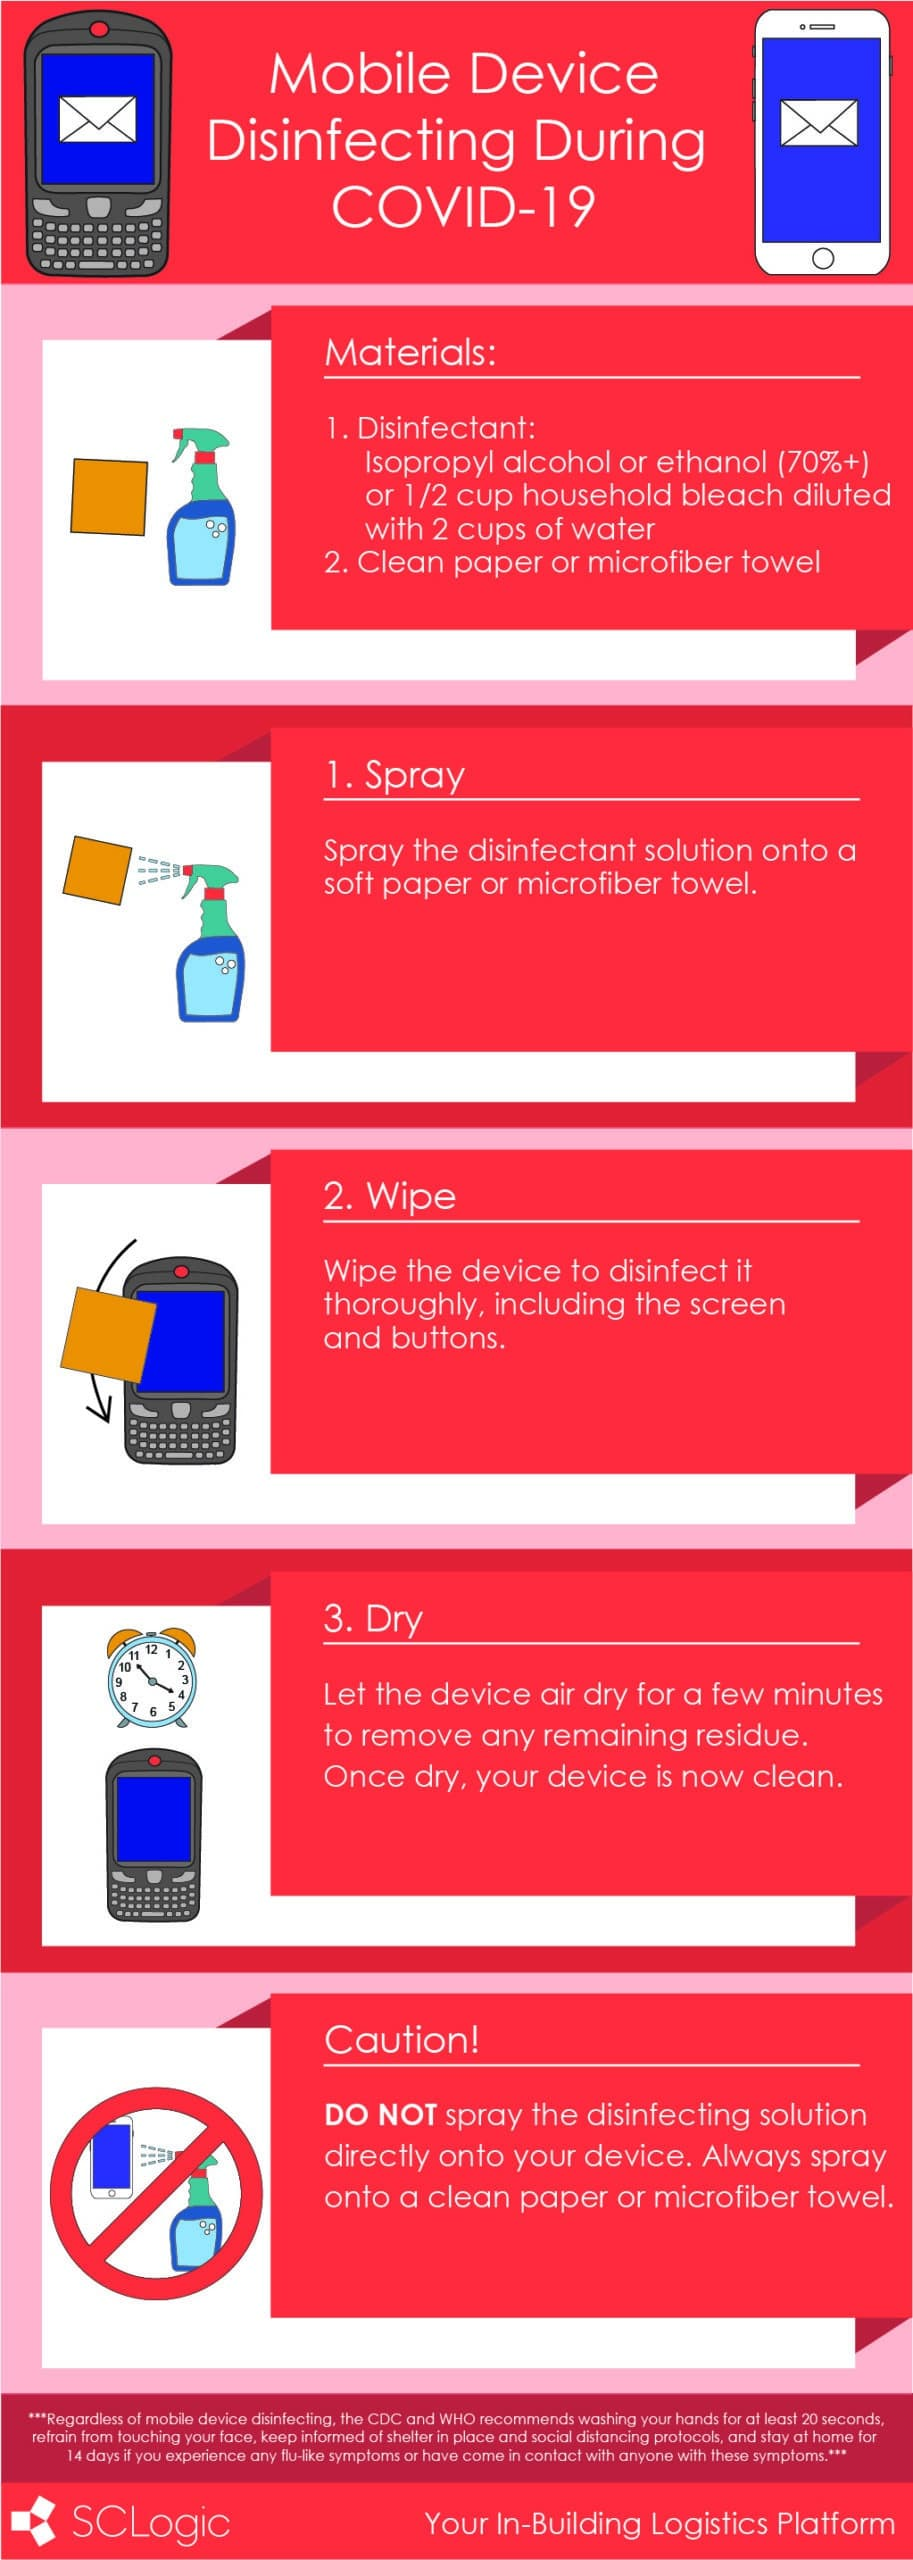 Infographic from SCLogic showing mobile disinfecting tips during the COVID-19 pandemic.